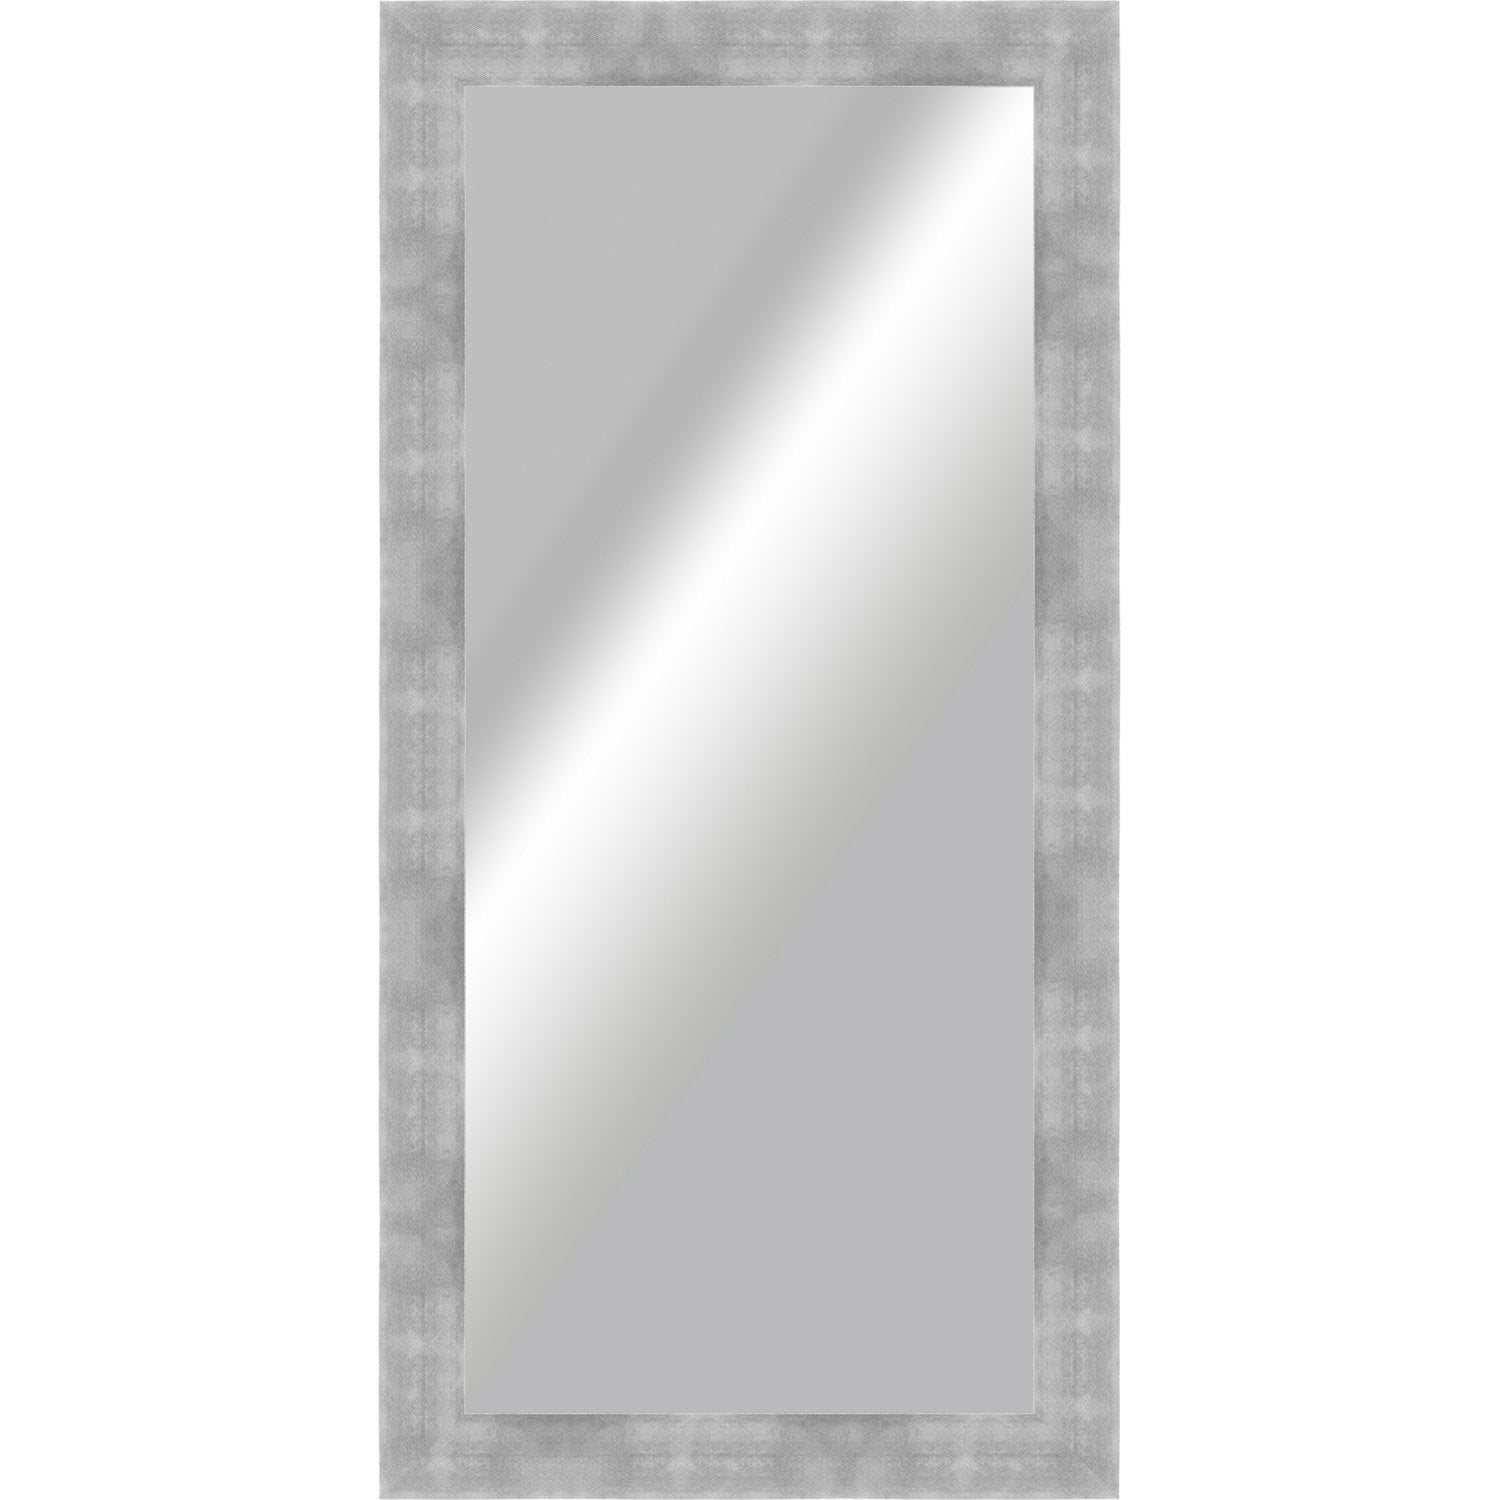 Miroir grand format leroy merlin for Grand miroir gris